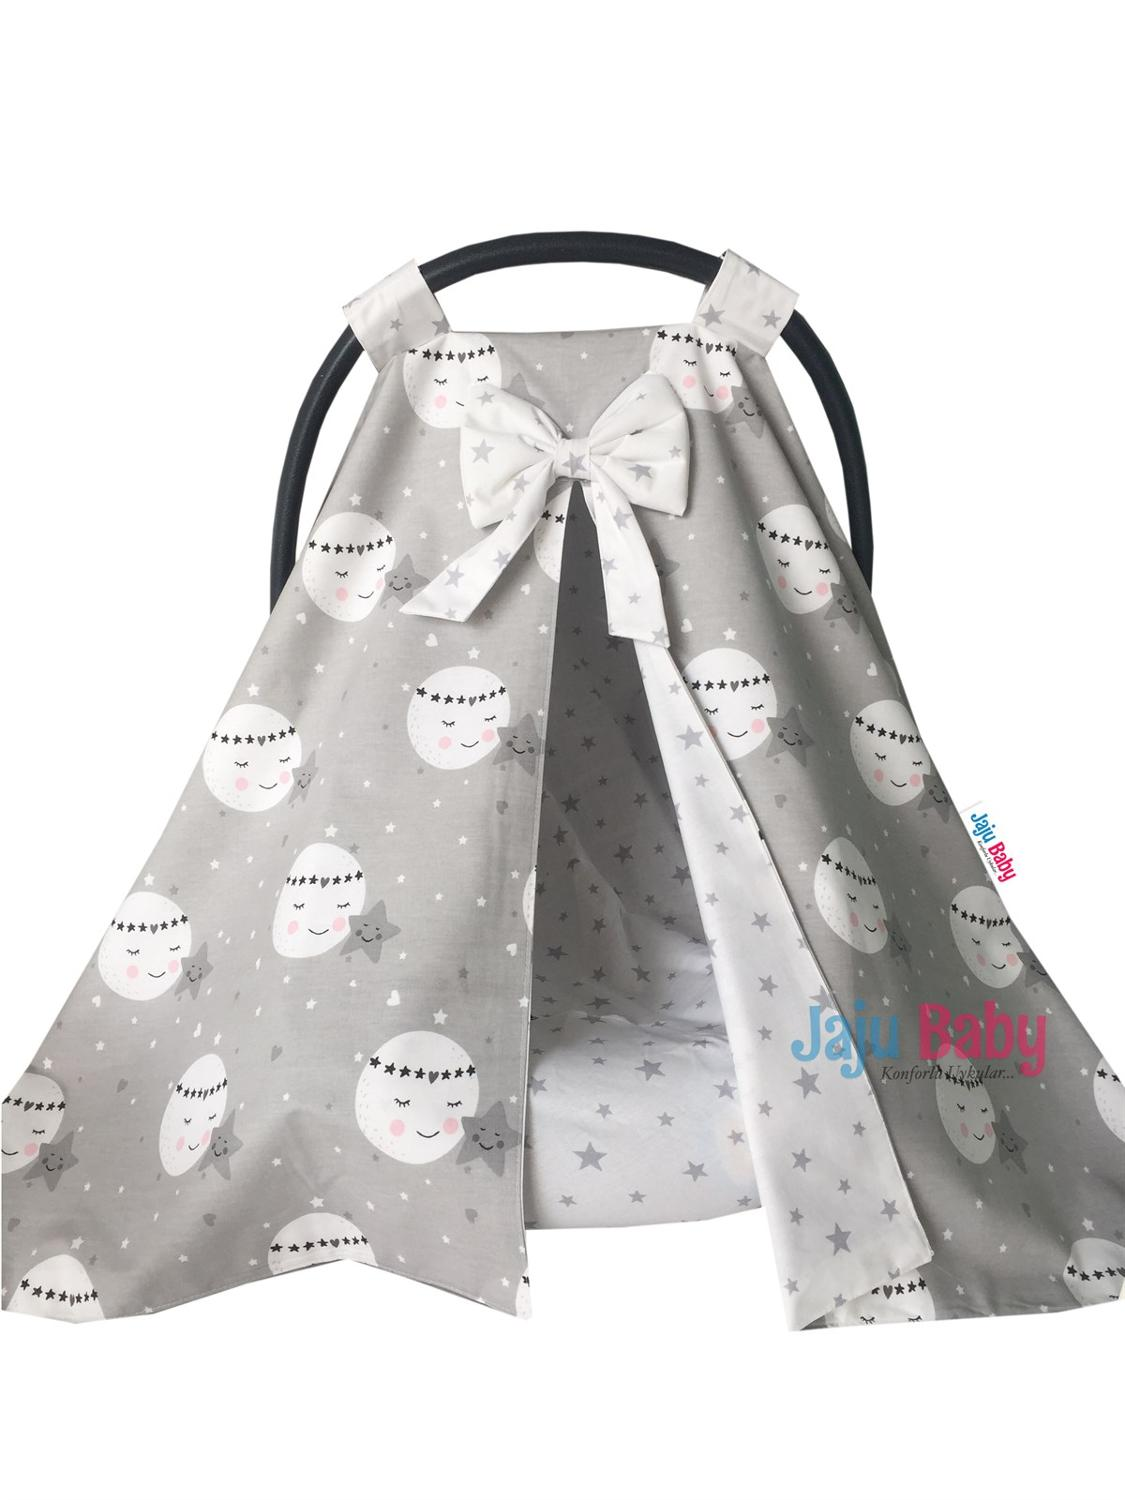 Jaju Baby Gray Smiling Moon Pattern Stroller Cover and Inner Linen